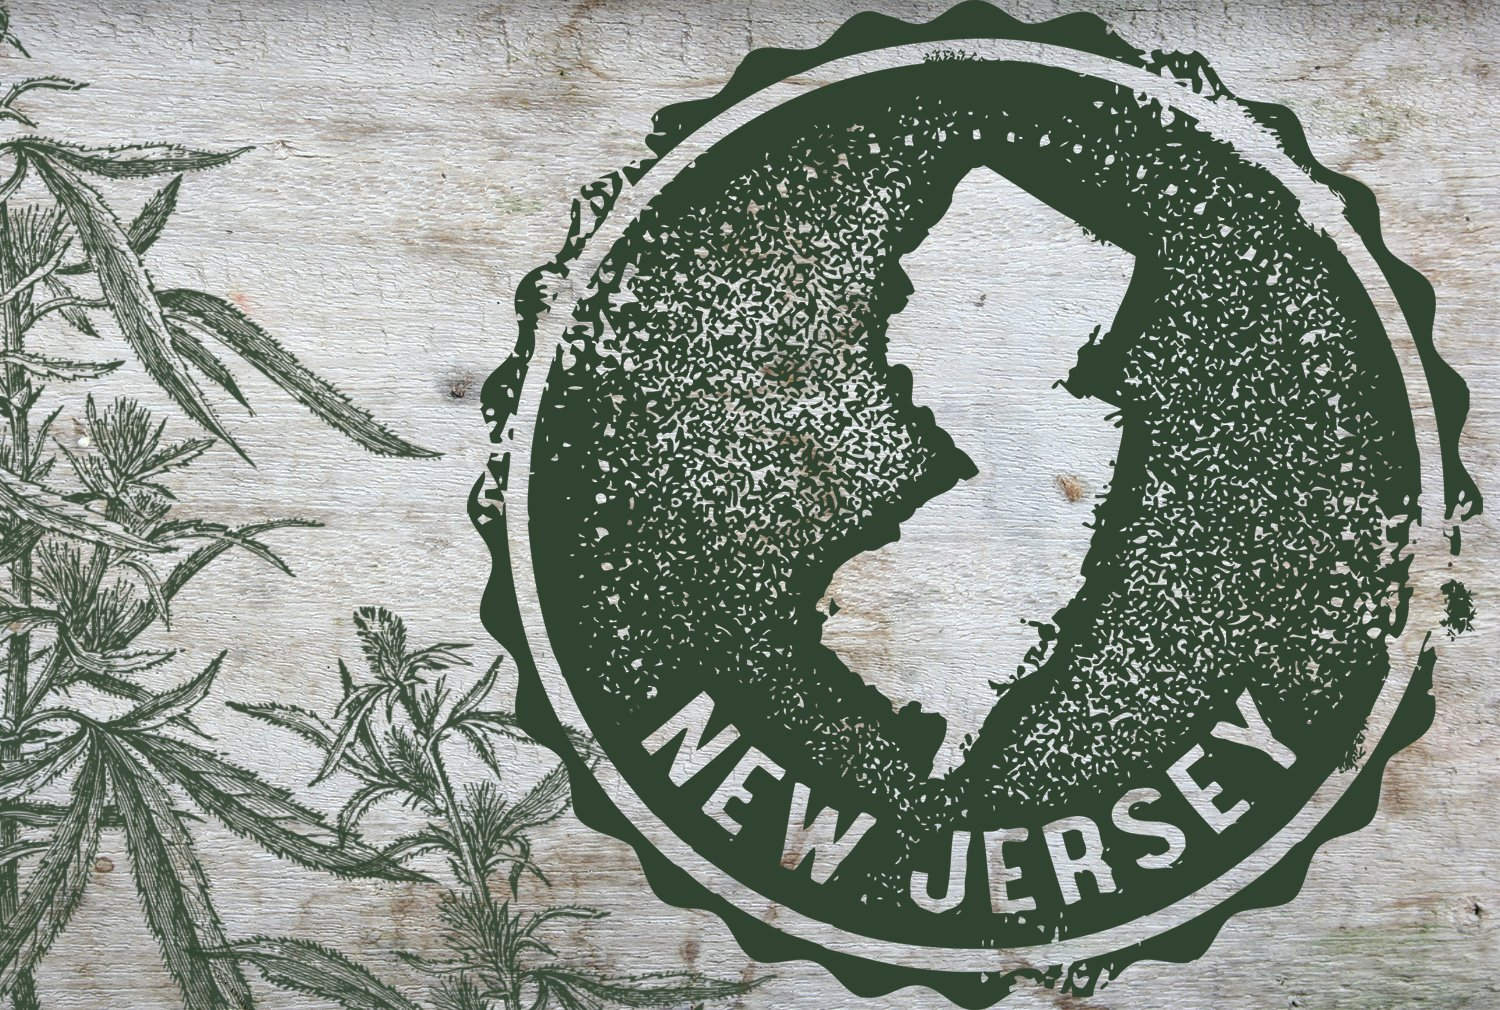 New Jersey Medical Marijuana Program To Expand Access, Business